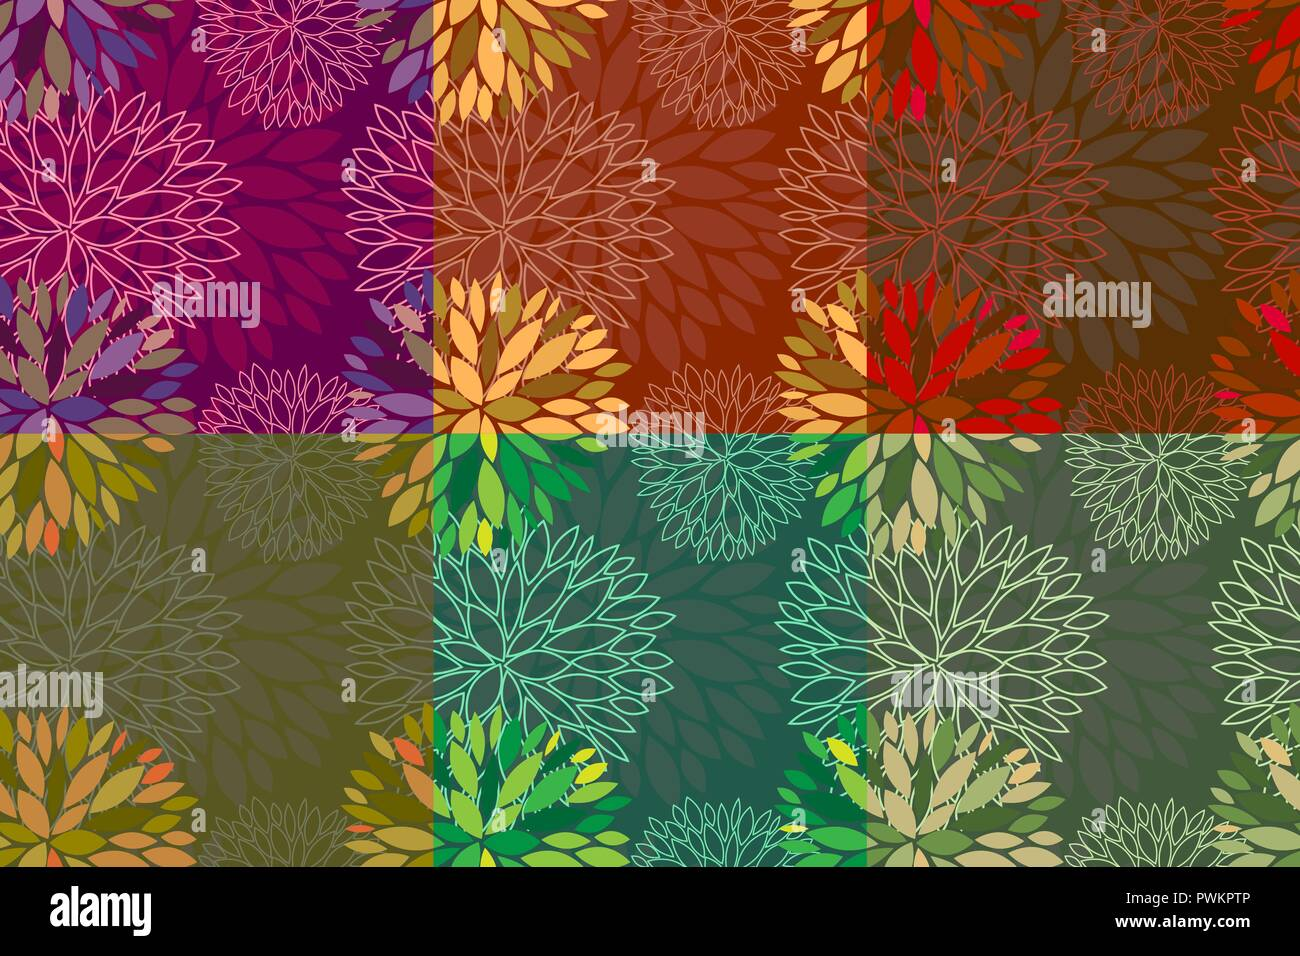 Set Of 6 Vector Seamless Abstract Seasonal Floral Backgrounds In